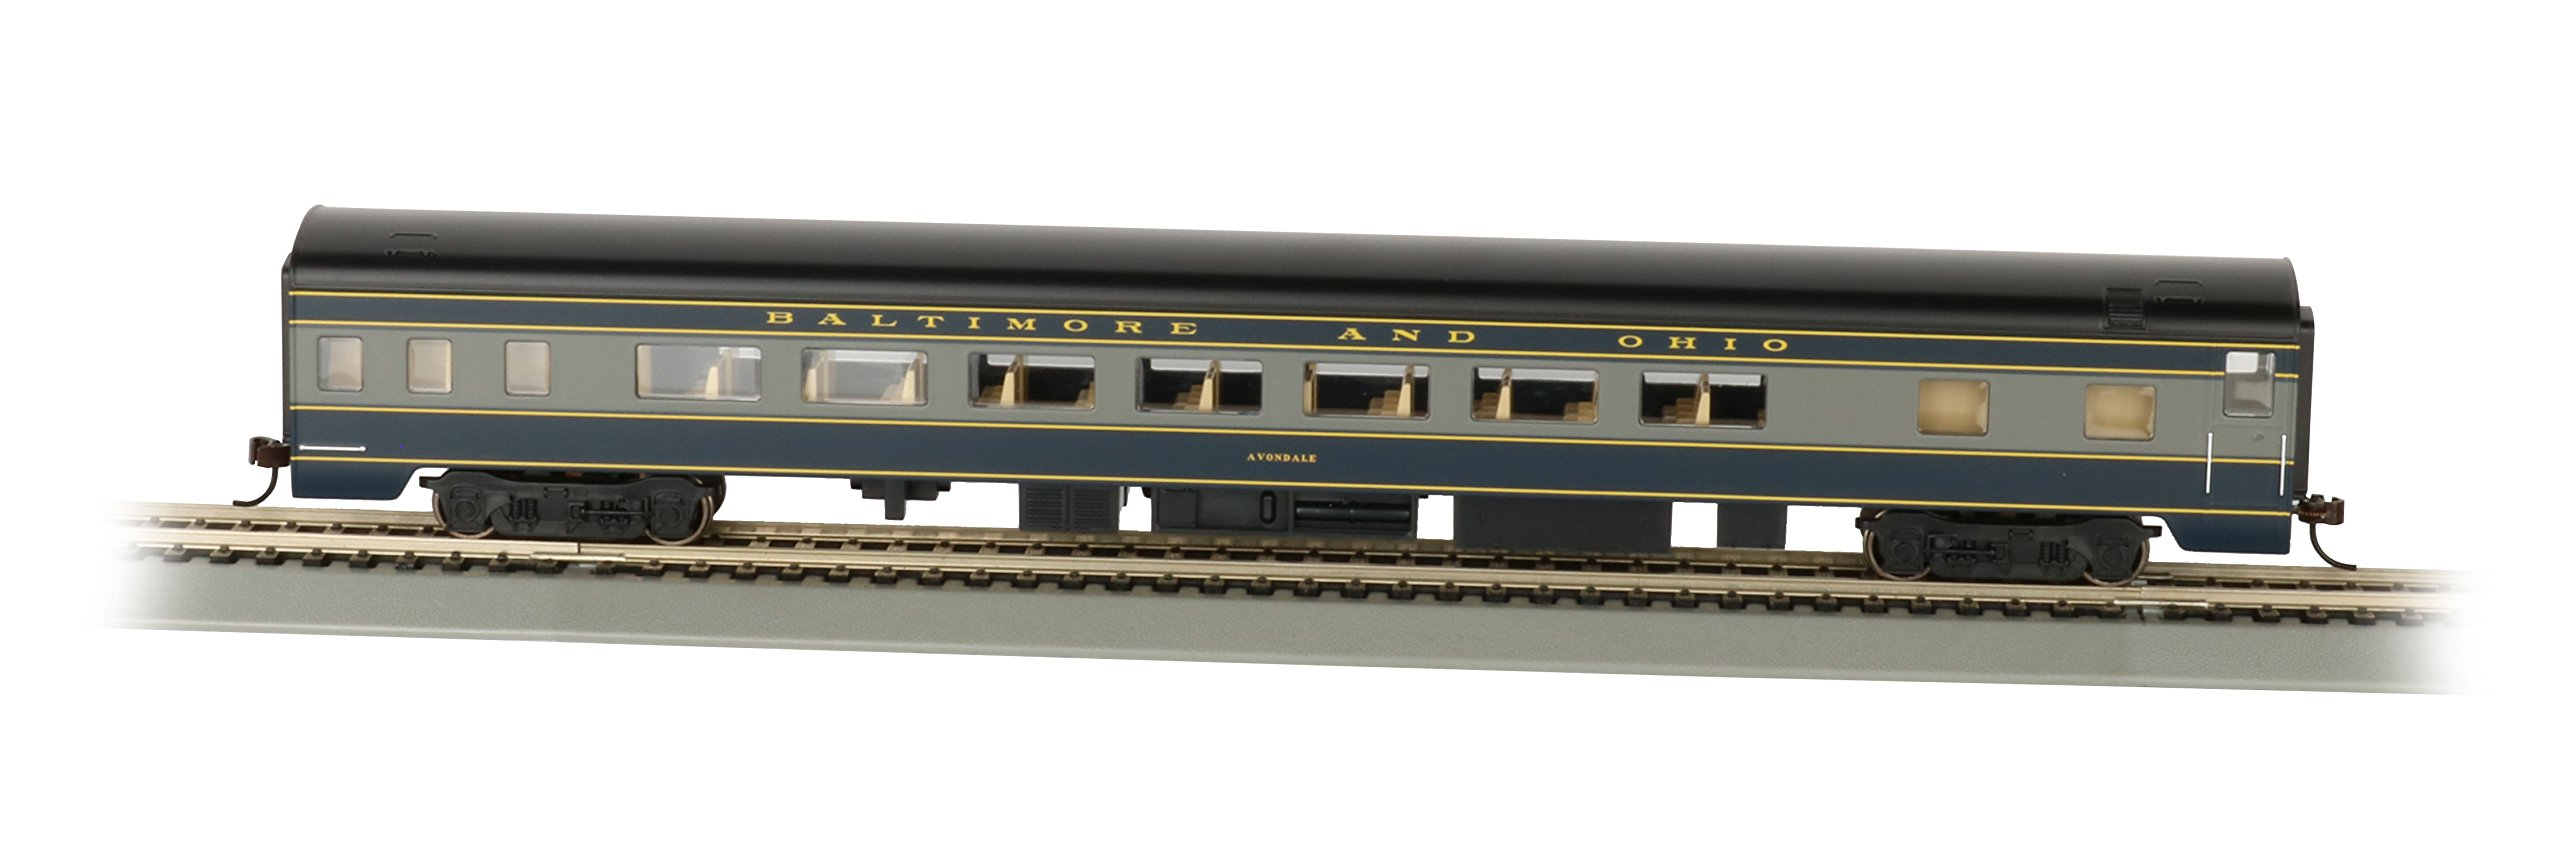 Bachmann Industries B&O Smooth-Side Coach Car with Lighted Interior (HO Scale), 85' by Bachmann Trains (Image #1)